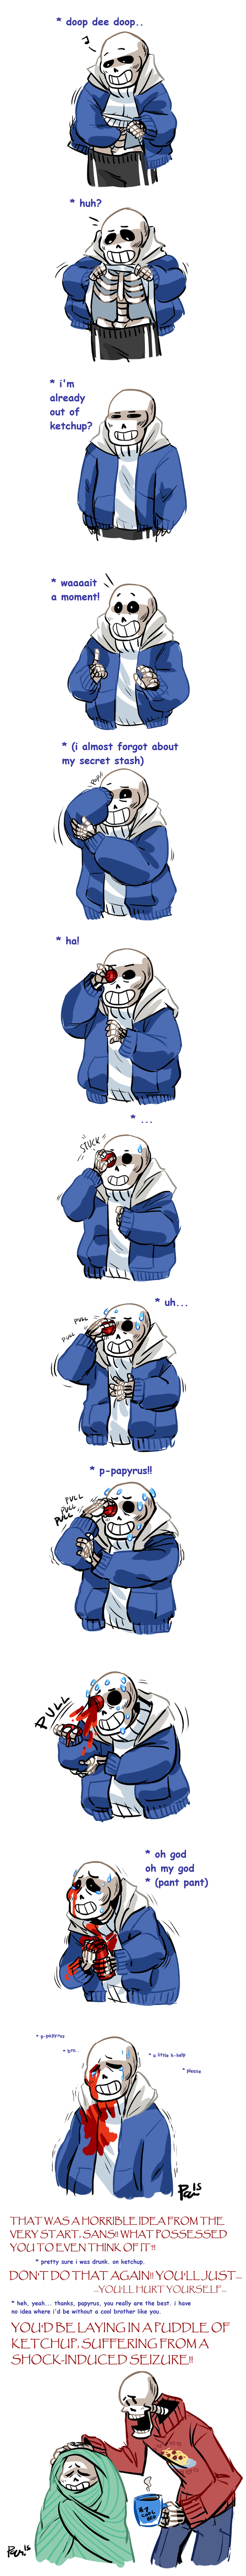 Sans makes an awful decision by bPAVLICA on DeviantArt